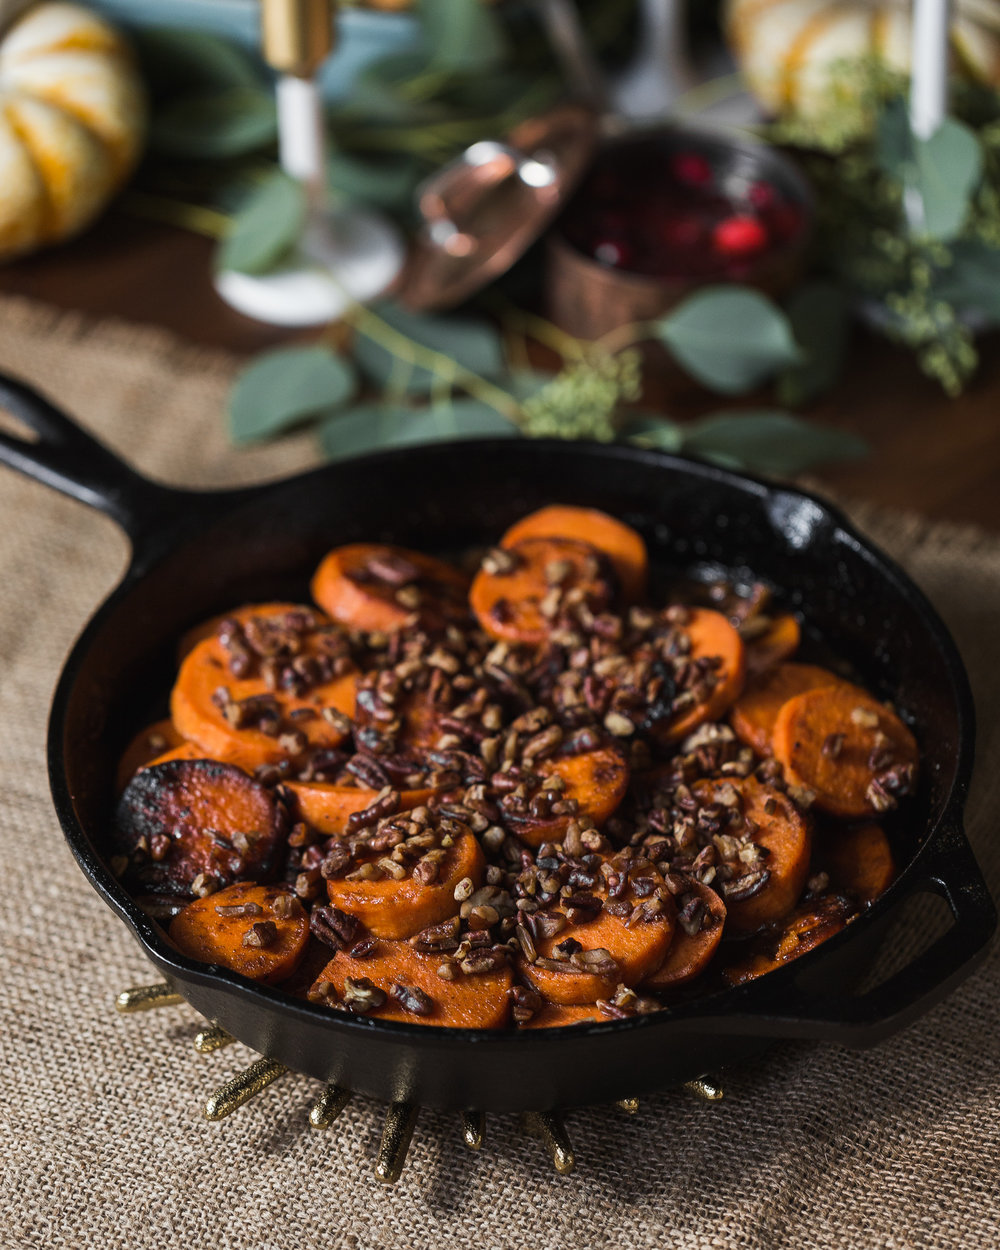 "Skillet Sweet Potatoes with Toasted Pecans - Yield: 6-8 servings1/2 cup light brown sugar1/4 cup granulated sugar1 teaspoon ground cinnamon1 teaspoon ground nutmeg1 pinch kosher salt1/2 cup unsalted butter6 sweet potatoes, peeled and sliced into 1/3"" rounds2 teaspoons vanilla extract3/4 cup pecans, chopped and toastedCombine the brown sugar, sugar, cinnamon, nutmeg and salt in a small bowl and set aside. In a large skillet or Dutch oven, melt the butter over medium heat. Add the sliced sweet potatoes and toss to coat with butter. Sprinkle the sugar mixture over the buttered potatoes and stir to coat. Reduce heat to low, cover skillet, and continue cooking for on ou; stirring occasionally. Once the sauce has caramelized the potatoes and they're fork-tender, stir in the vanilla. The sauce will thicken slightly once off the heat.In a separate sauté pan, toast the pecans before topping the candied sweet potatoes."